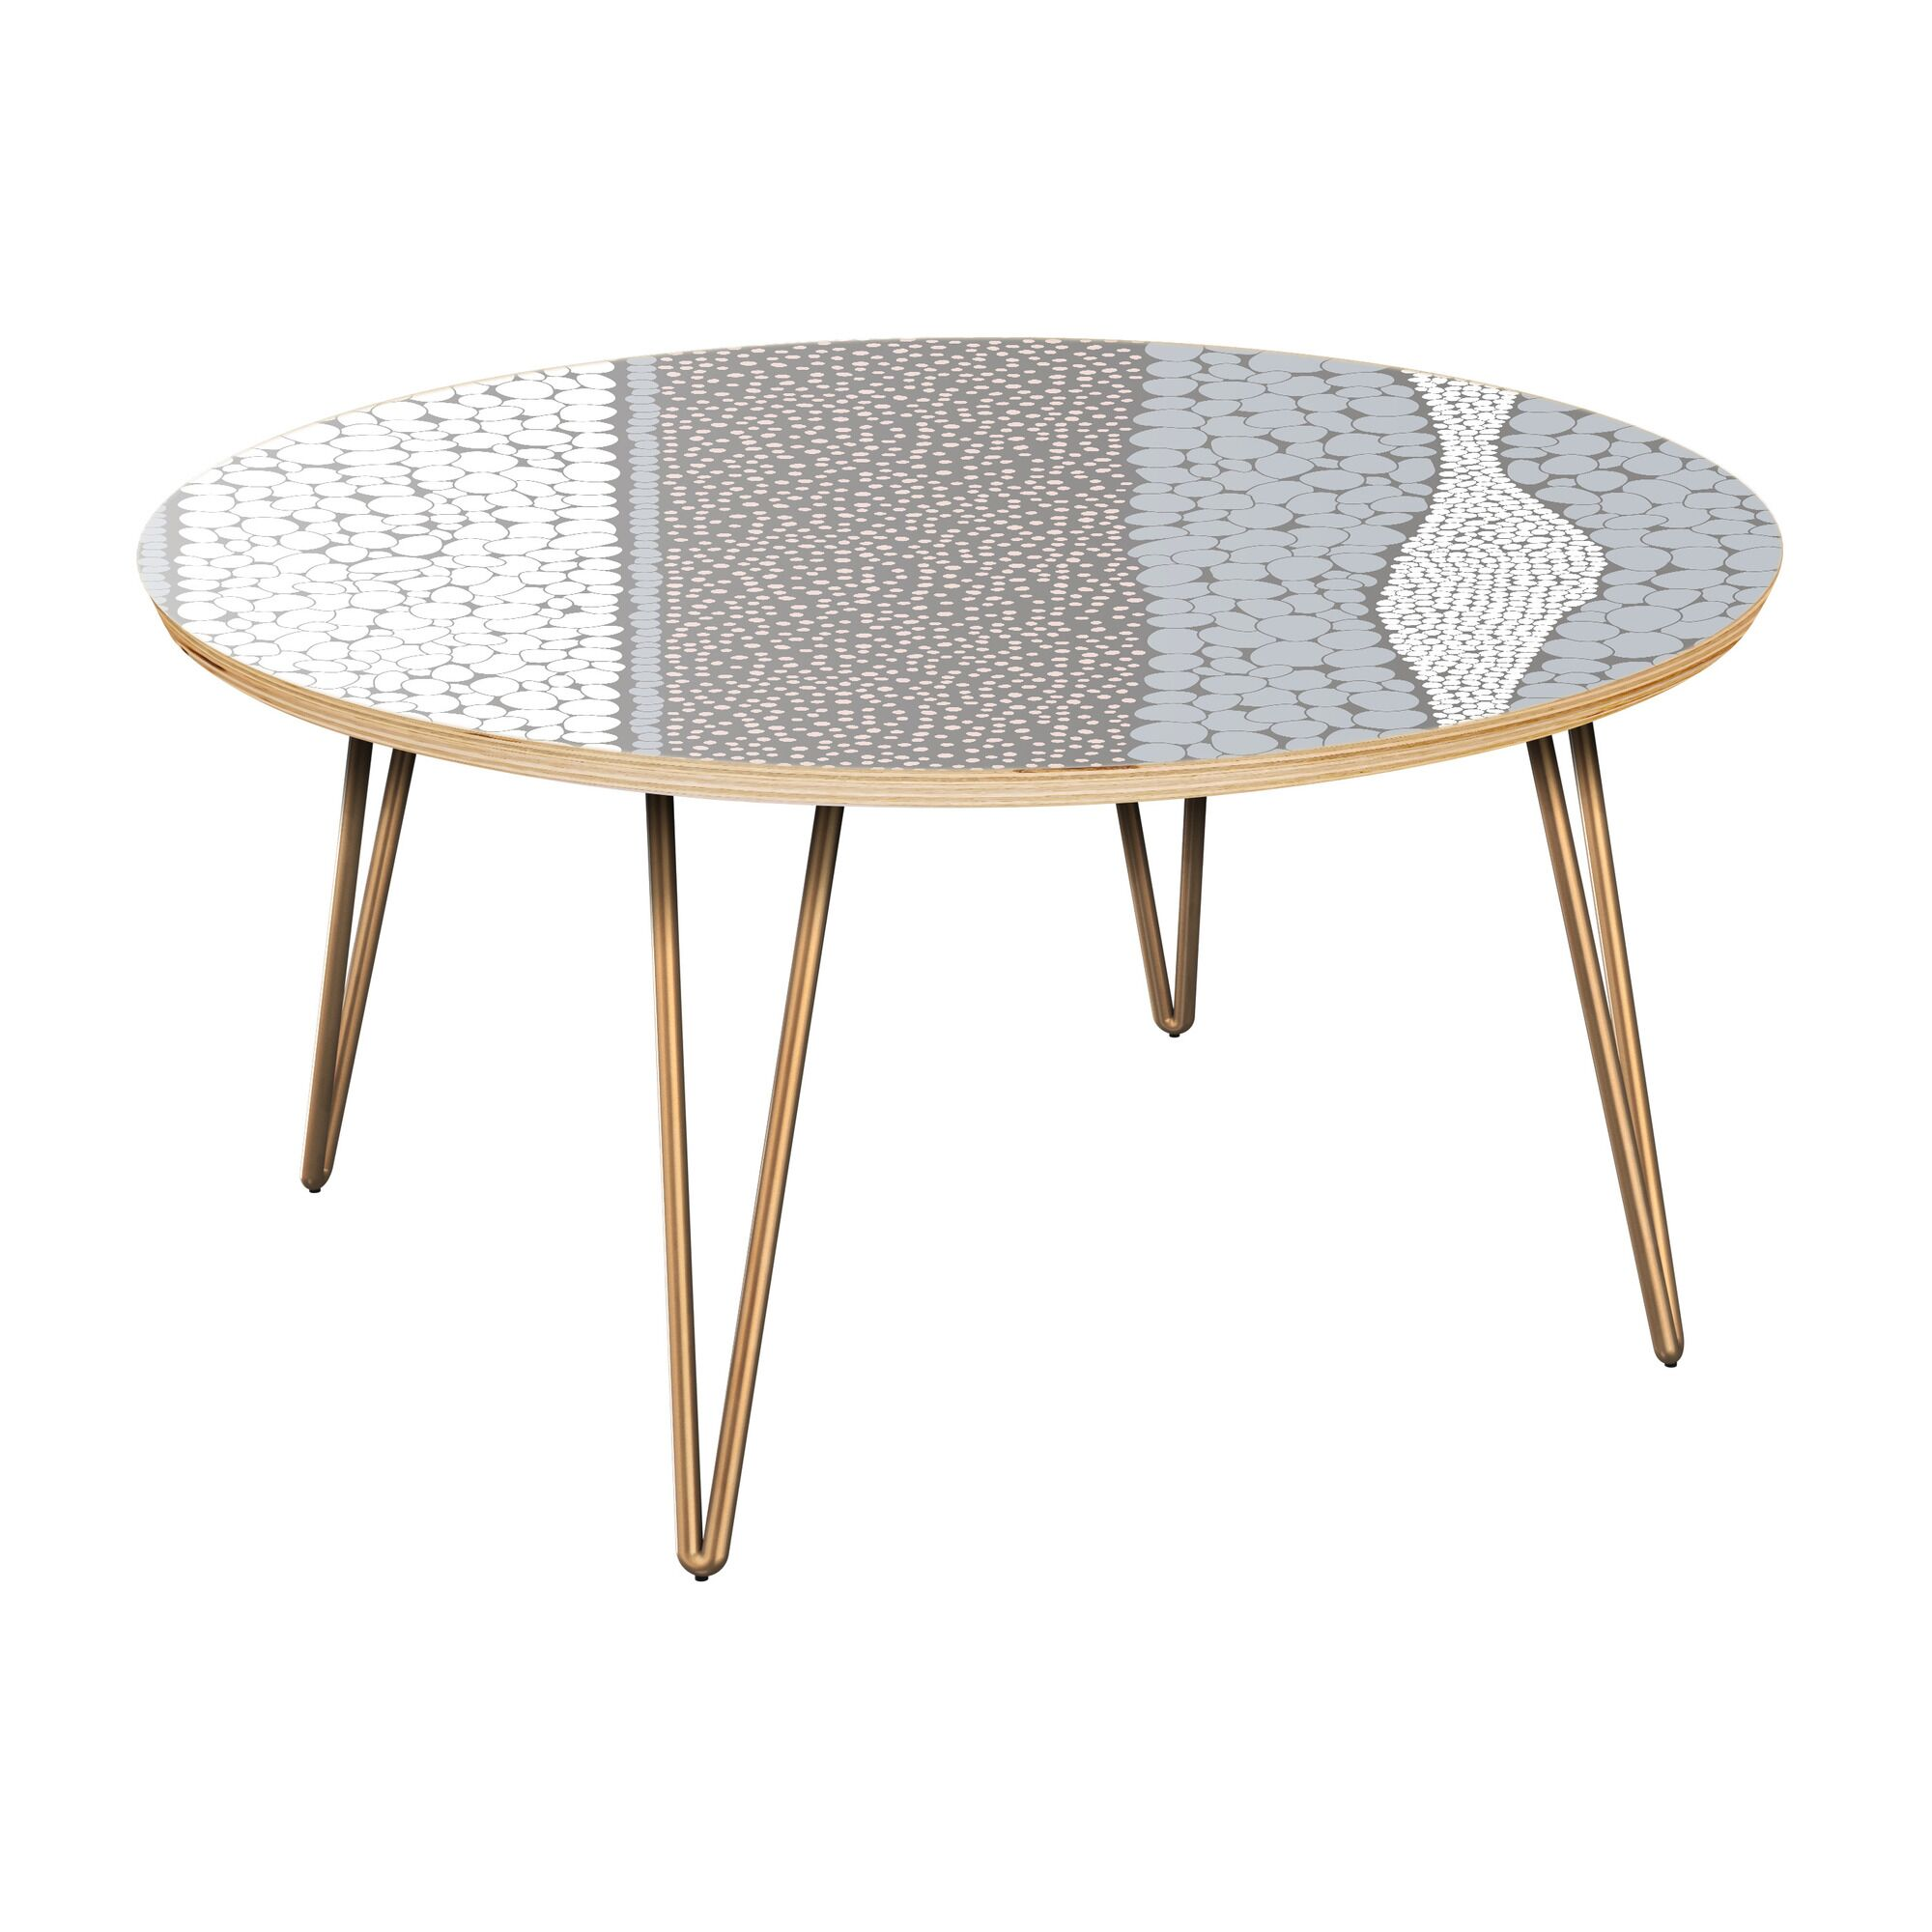 Fuiloro Coffee Table Table Top Color: Natural, Table Base Color: Brass